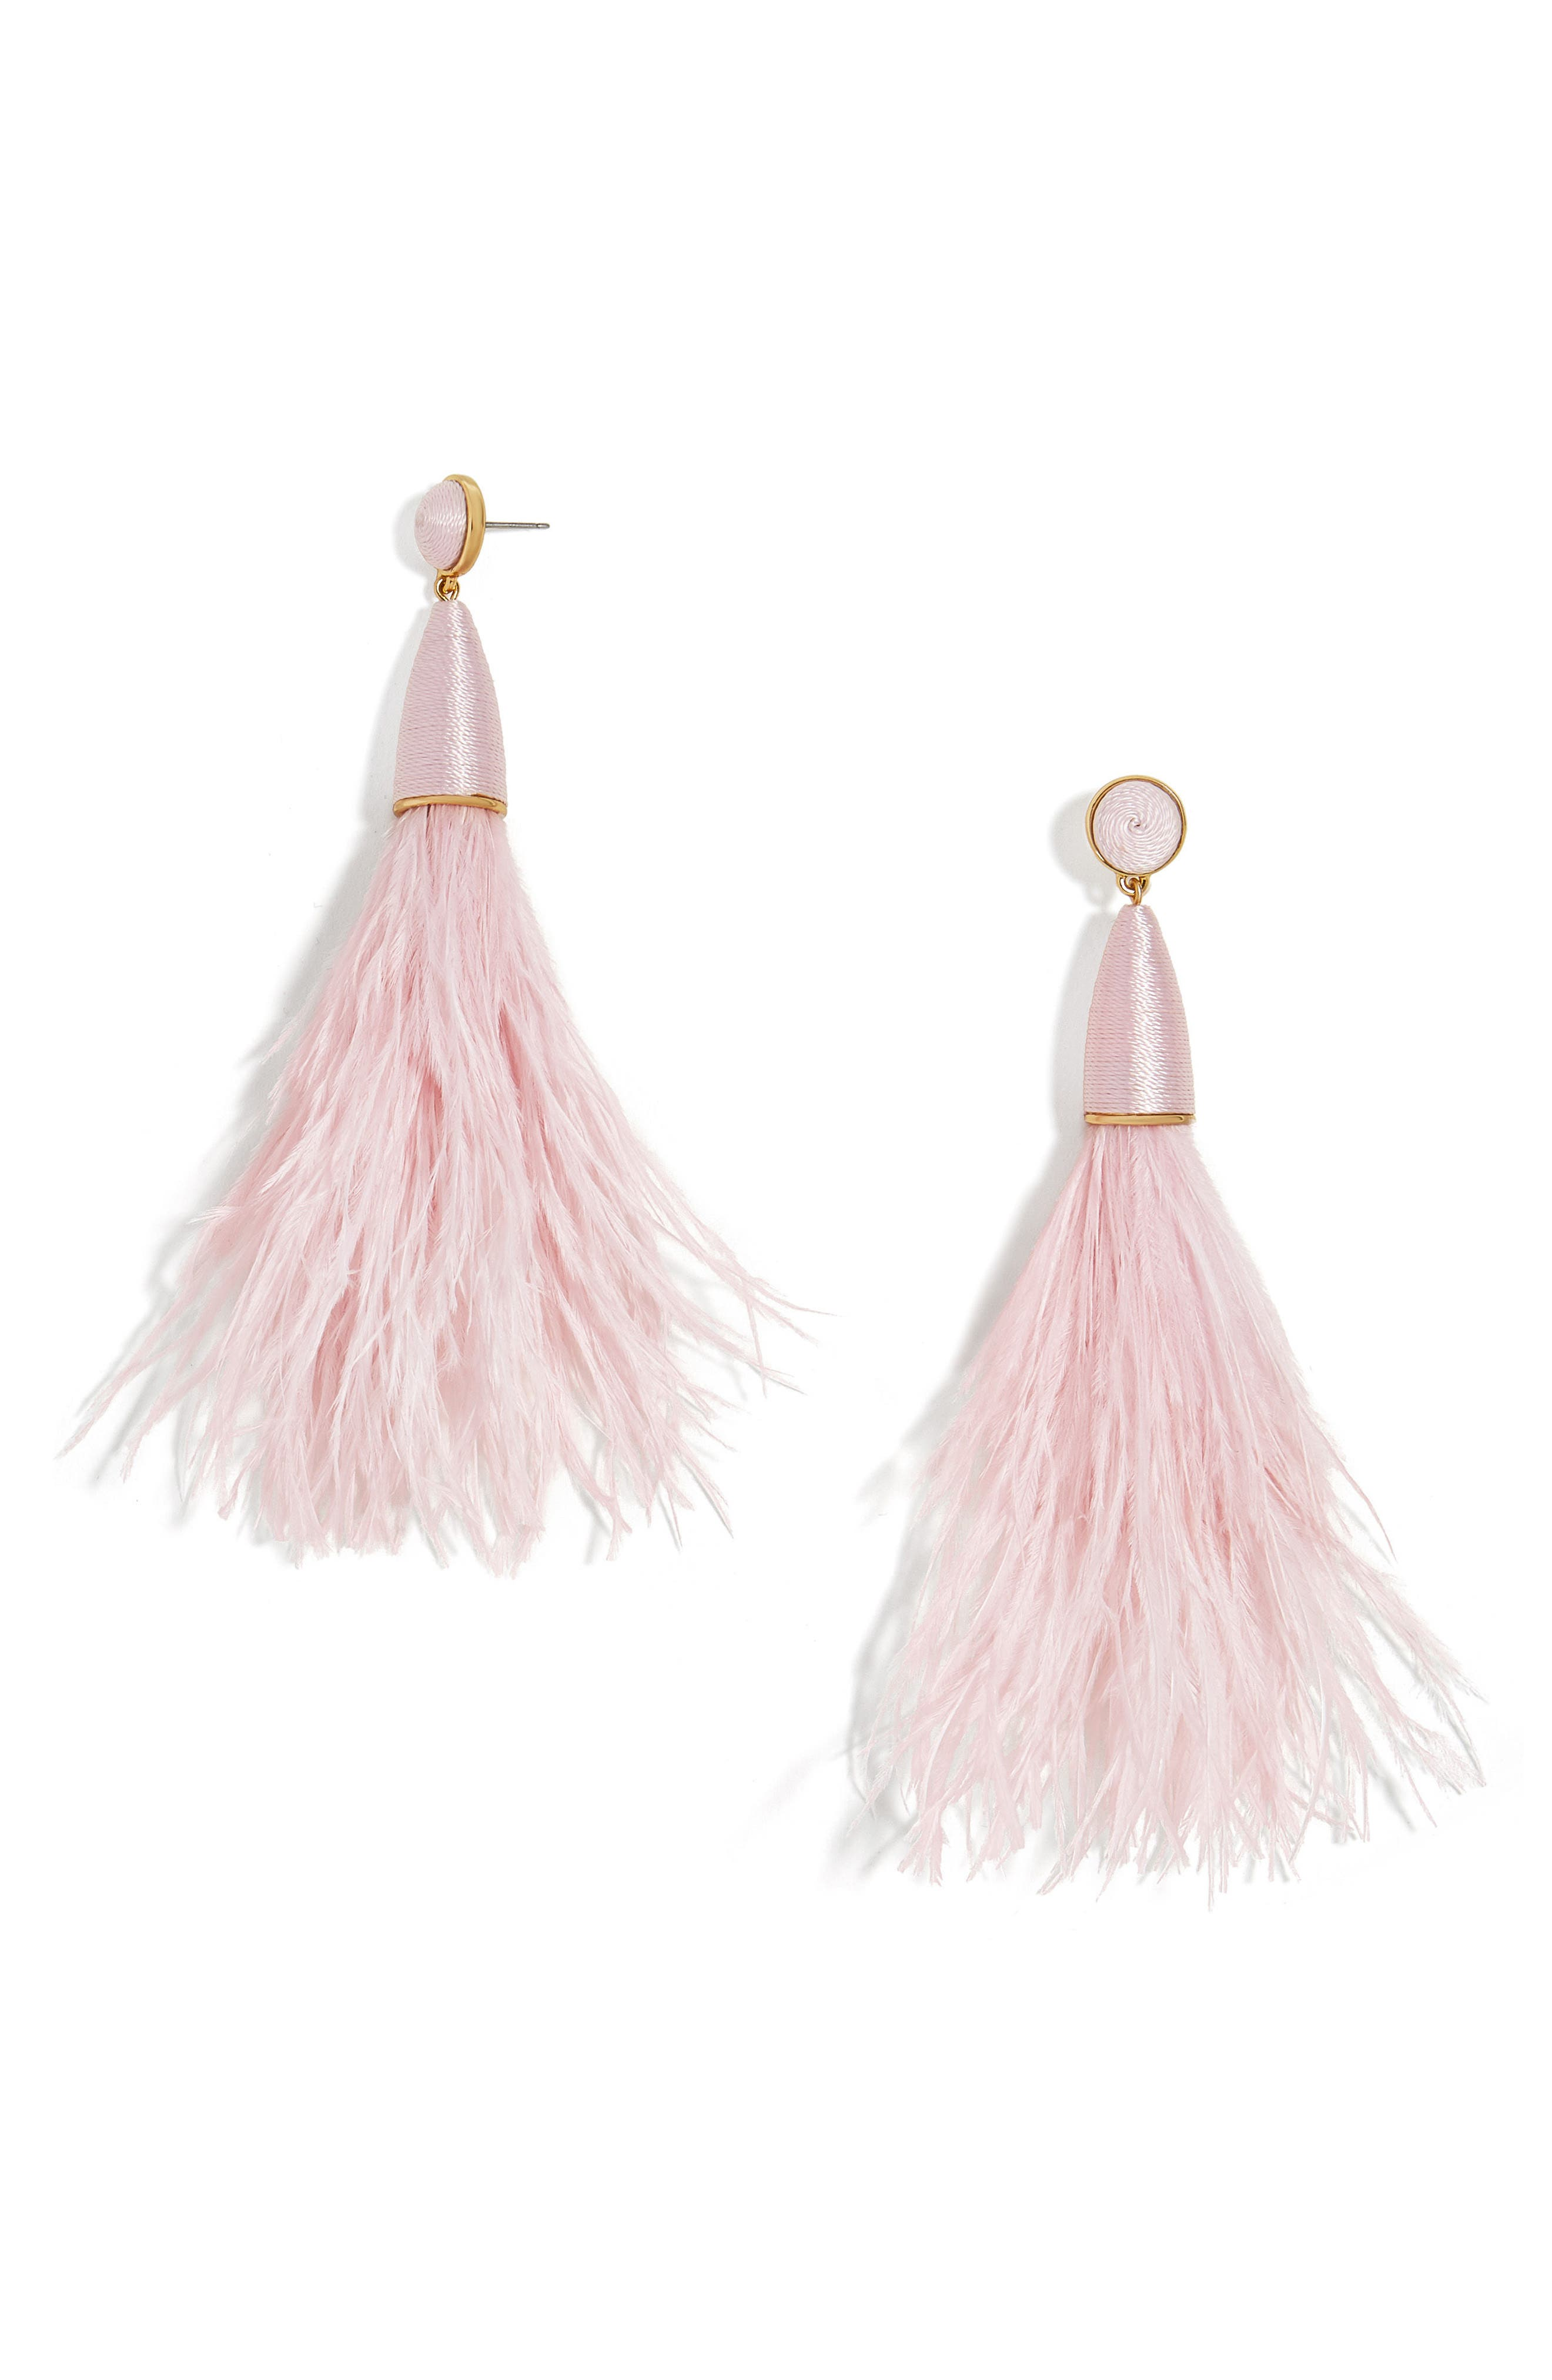 Chateau Feather Tassel Earrings,                             Main thumbnail 1, color,                             650